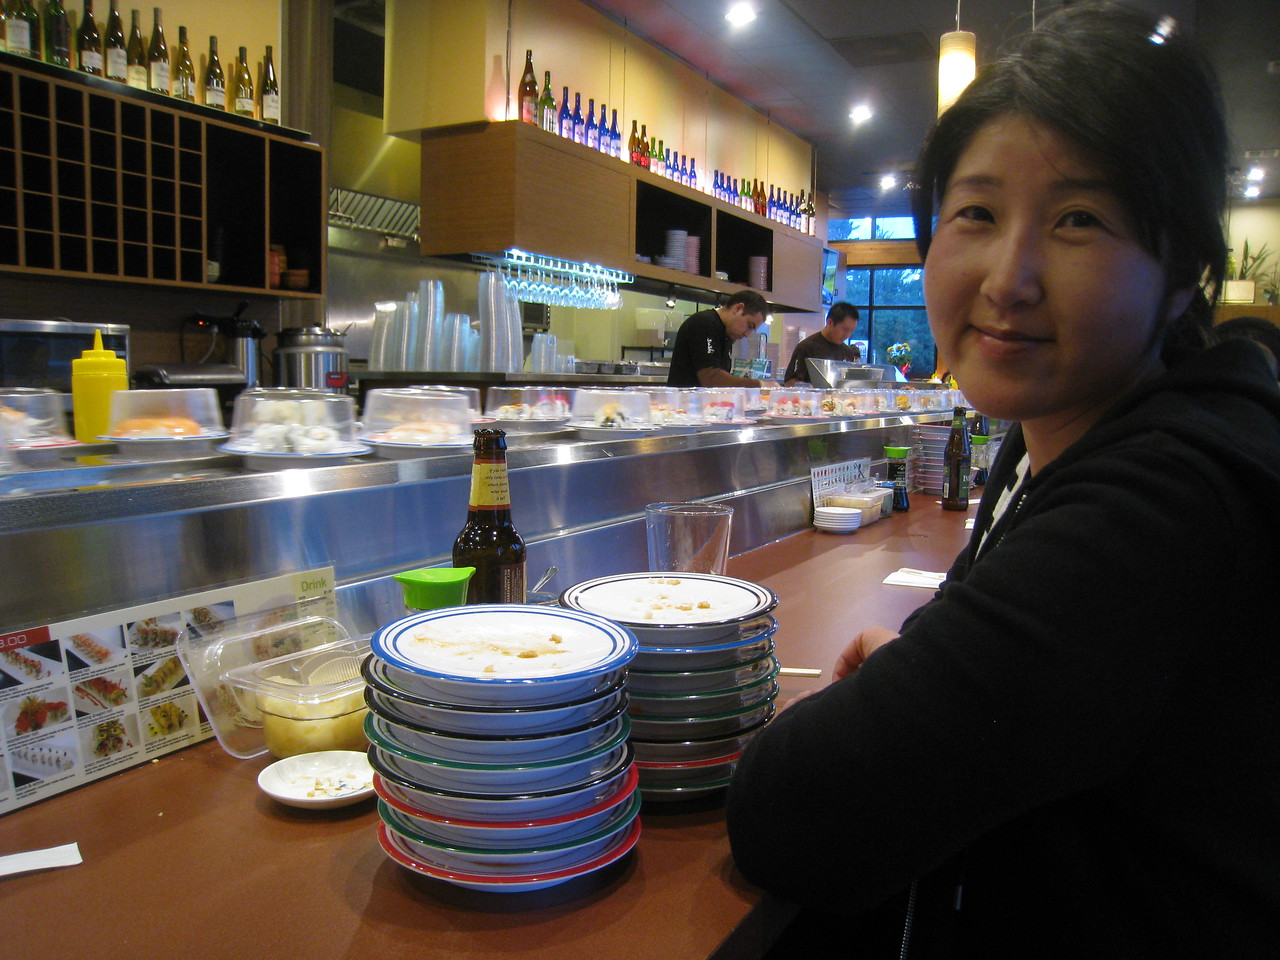 16 plates Chiyoko???? Celebrating our 5th year anniversary with conveyor Sushi!